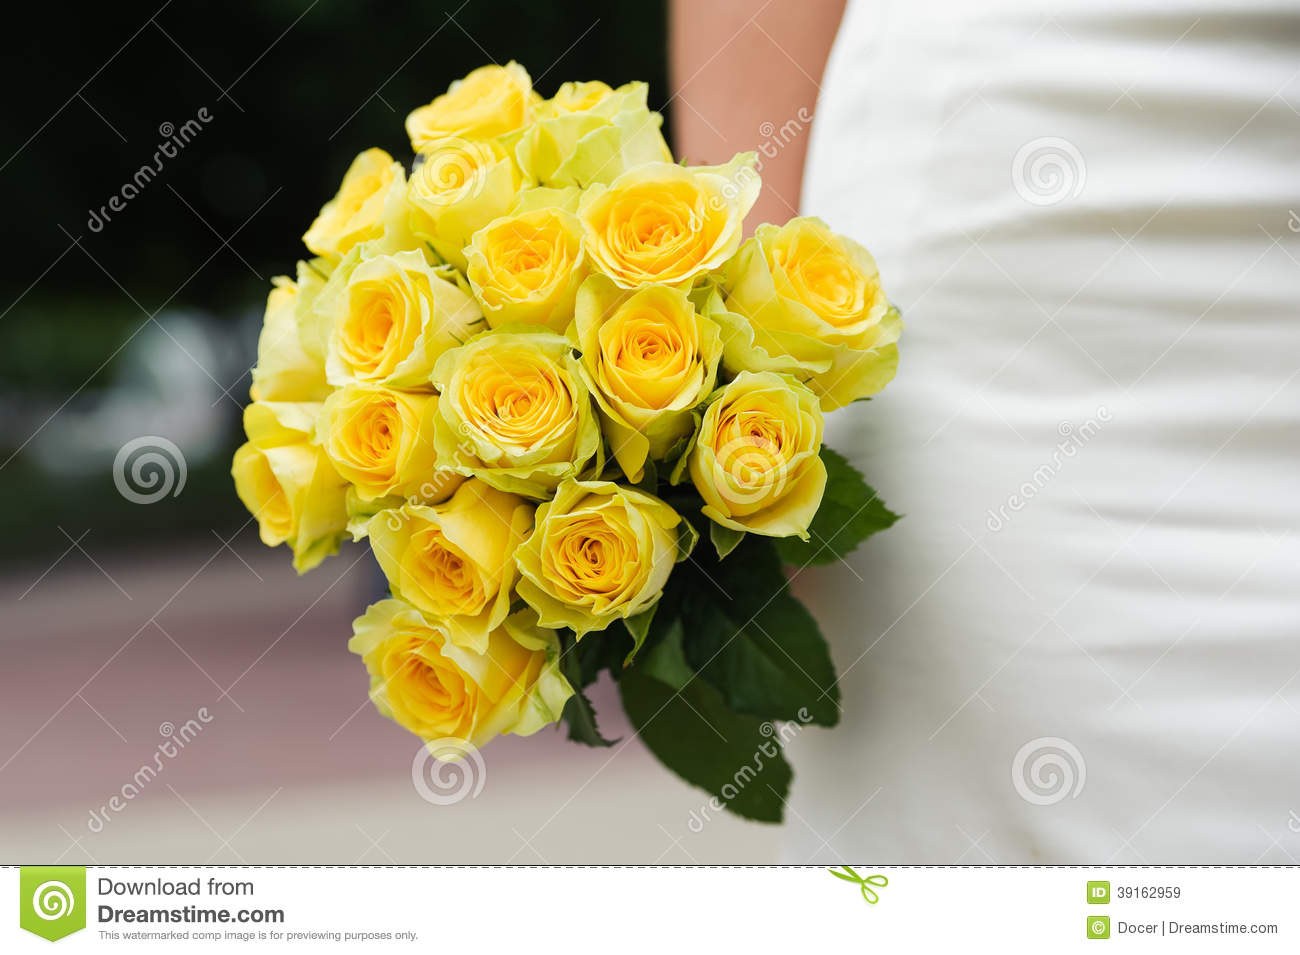 Wedding Bouquet With Many Yellow Roses Stock Image - Image of focus ...